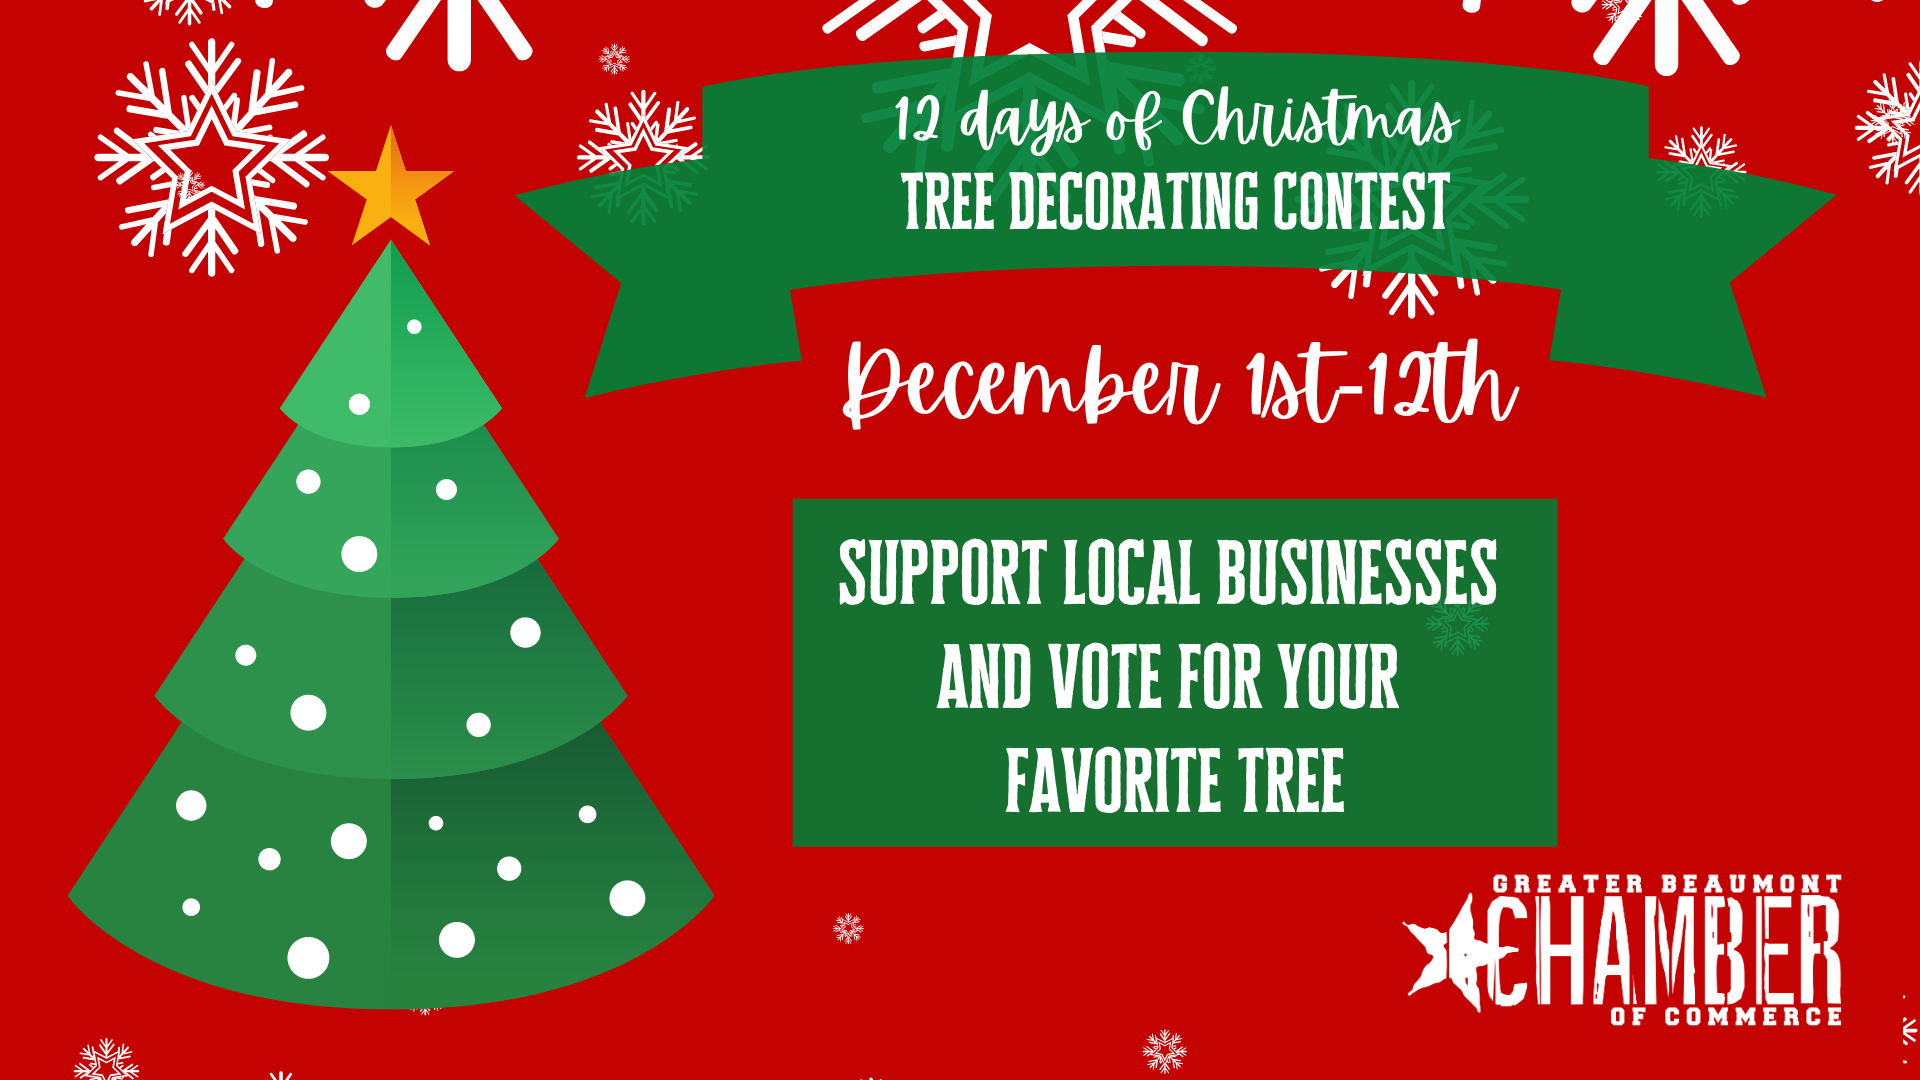 12-days-of-Christmas-Tree-Decorating-Contest---FB-Event.png